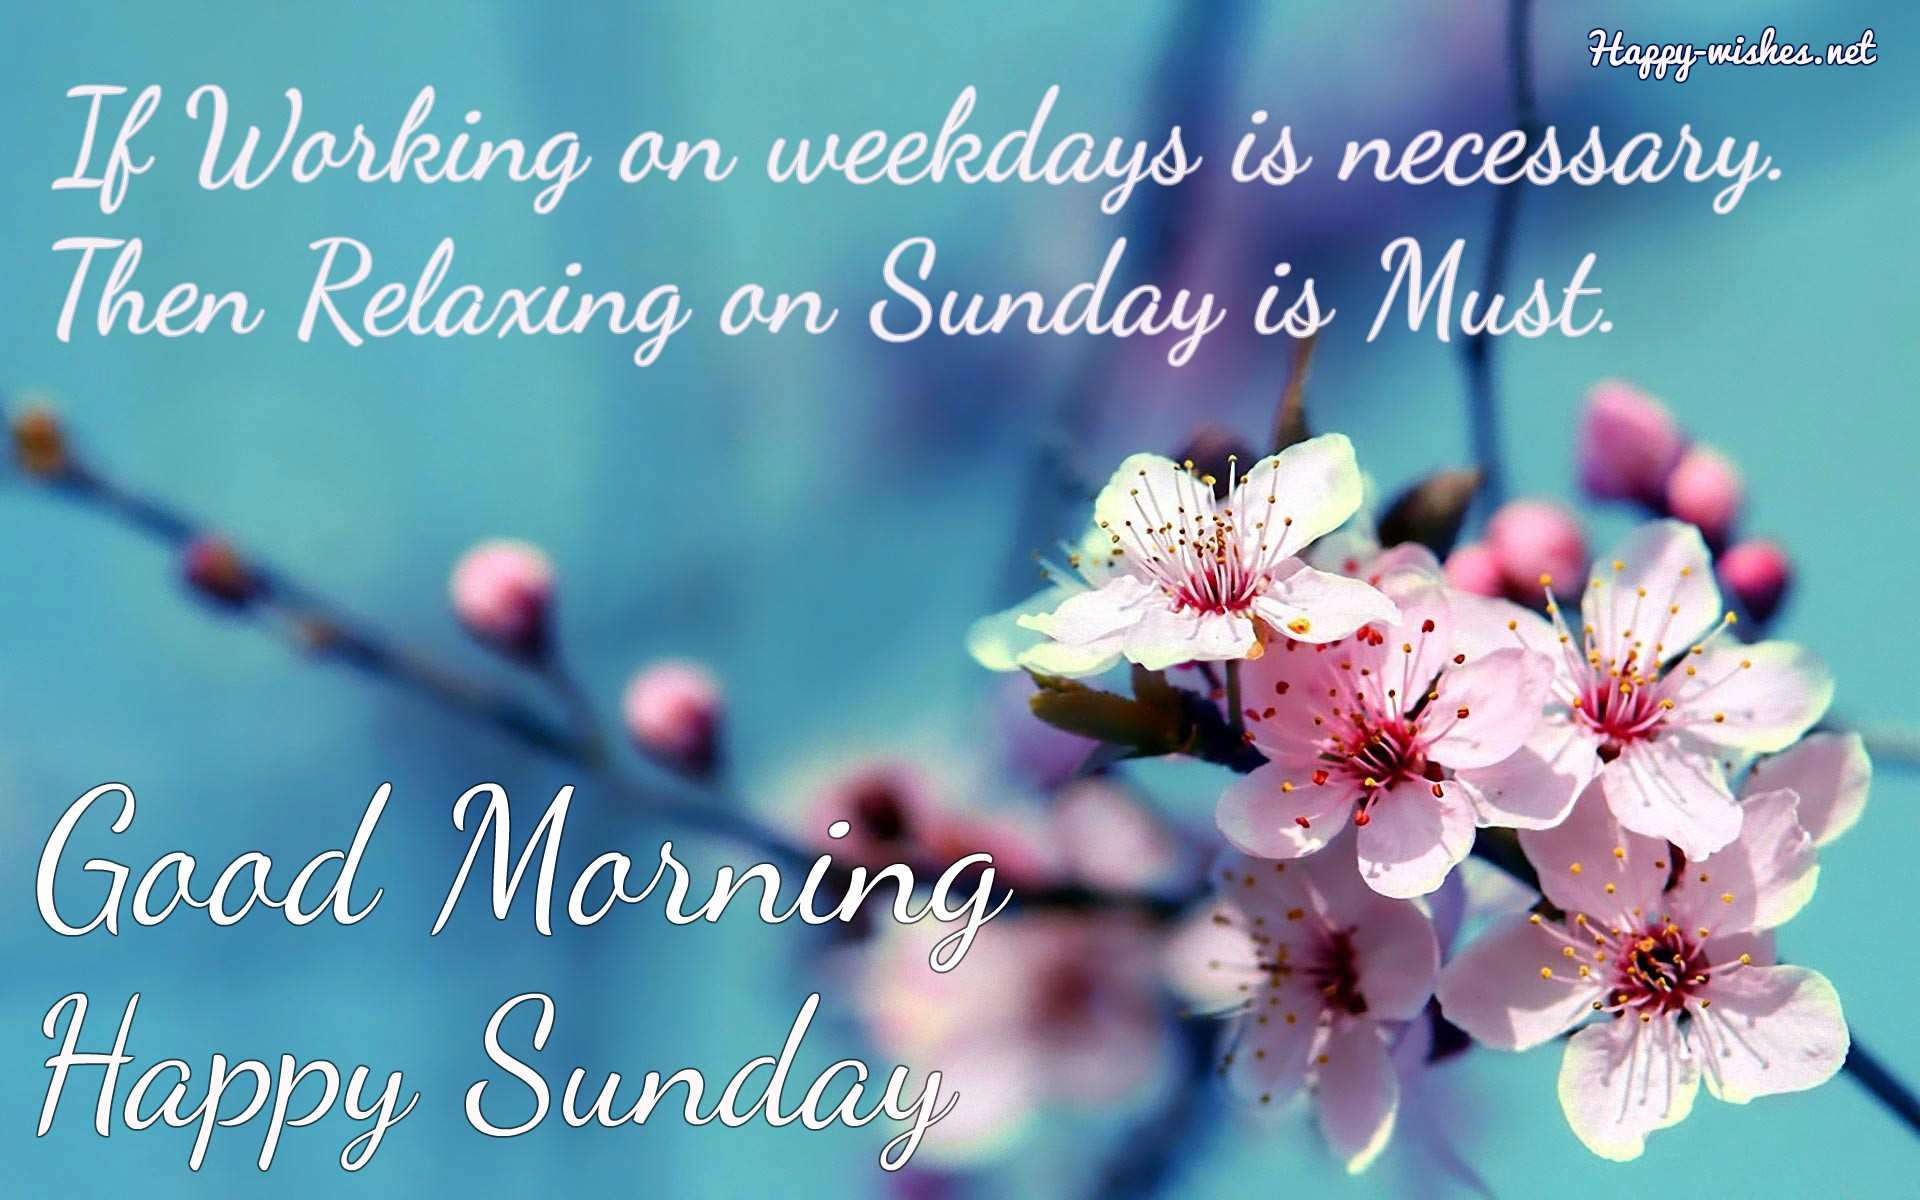 Good Morning Wishes On Sunday Quotes - Sunday Morning Wishes Quotes , HD Wallpaper & Backgrounds